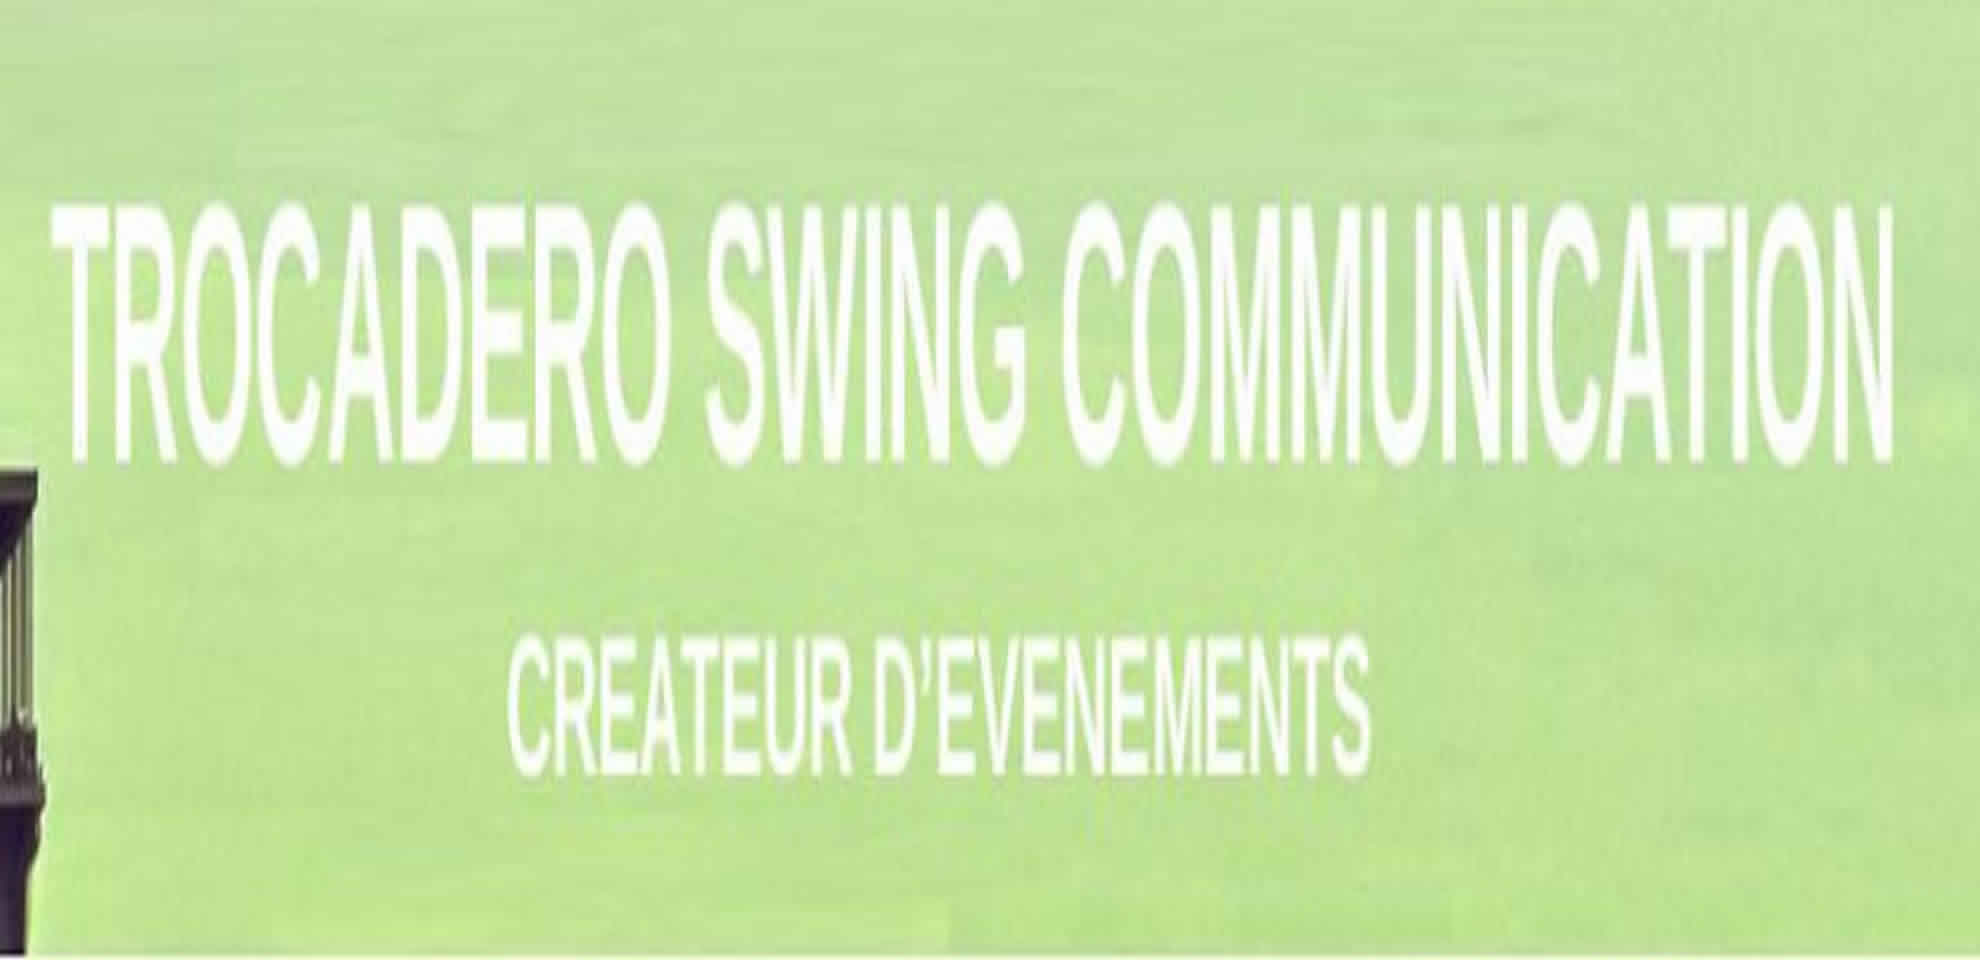 TROCADERO SWING COMMUNICATION